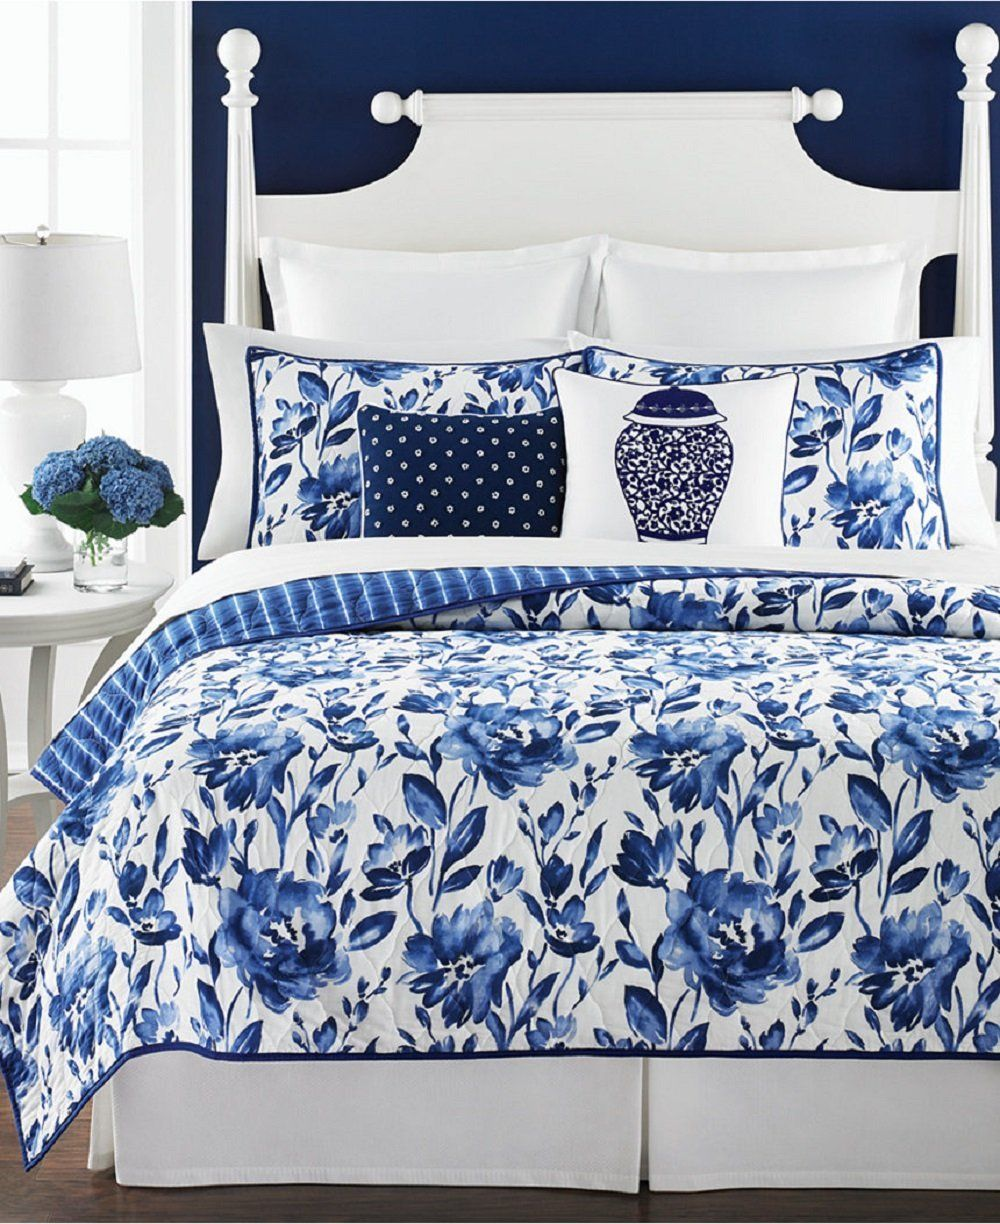 picturesque better homes and gardens quilts. Amazon com  Martha Stewart 3 Piece 100 Cotton Quilt and Sham Set